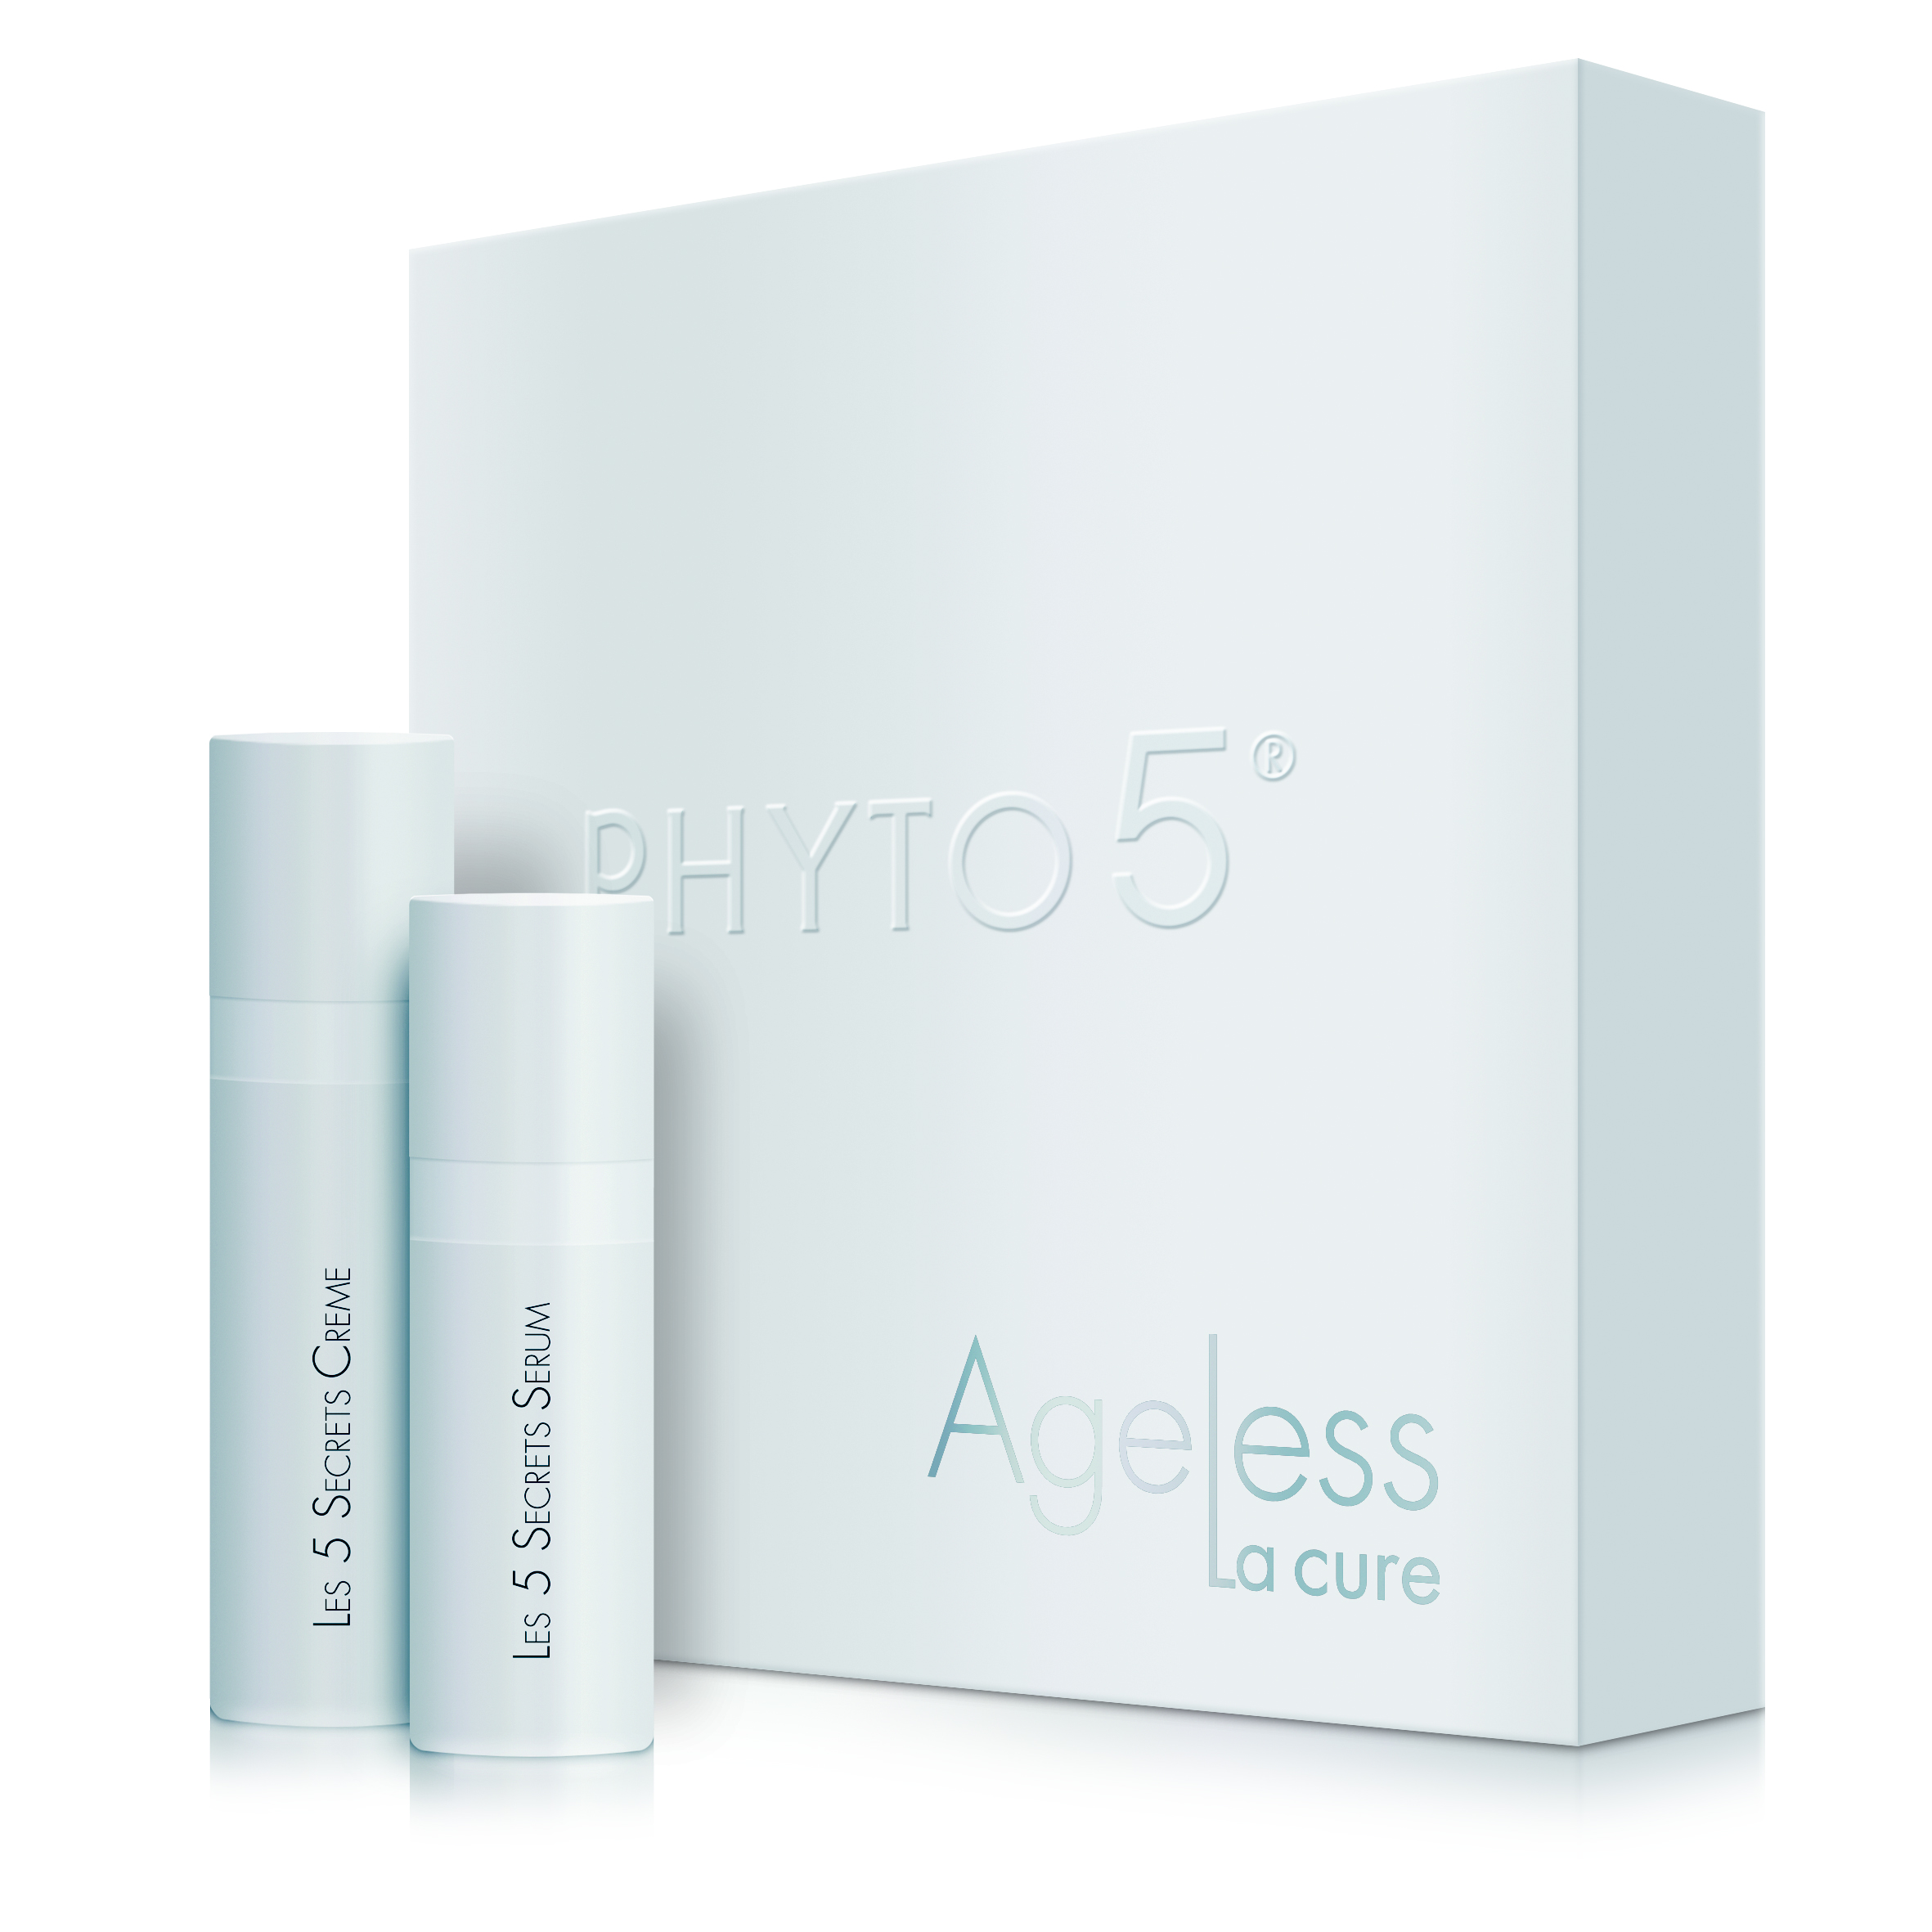 One of ten products from the line: The Five Secrets Facial Serum and Cream Kit for a 3-Week Cure